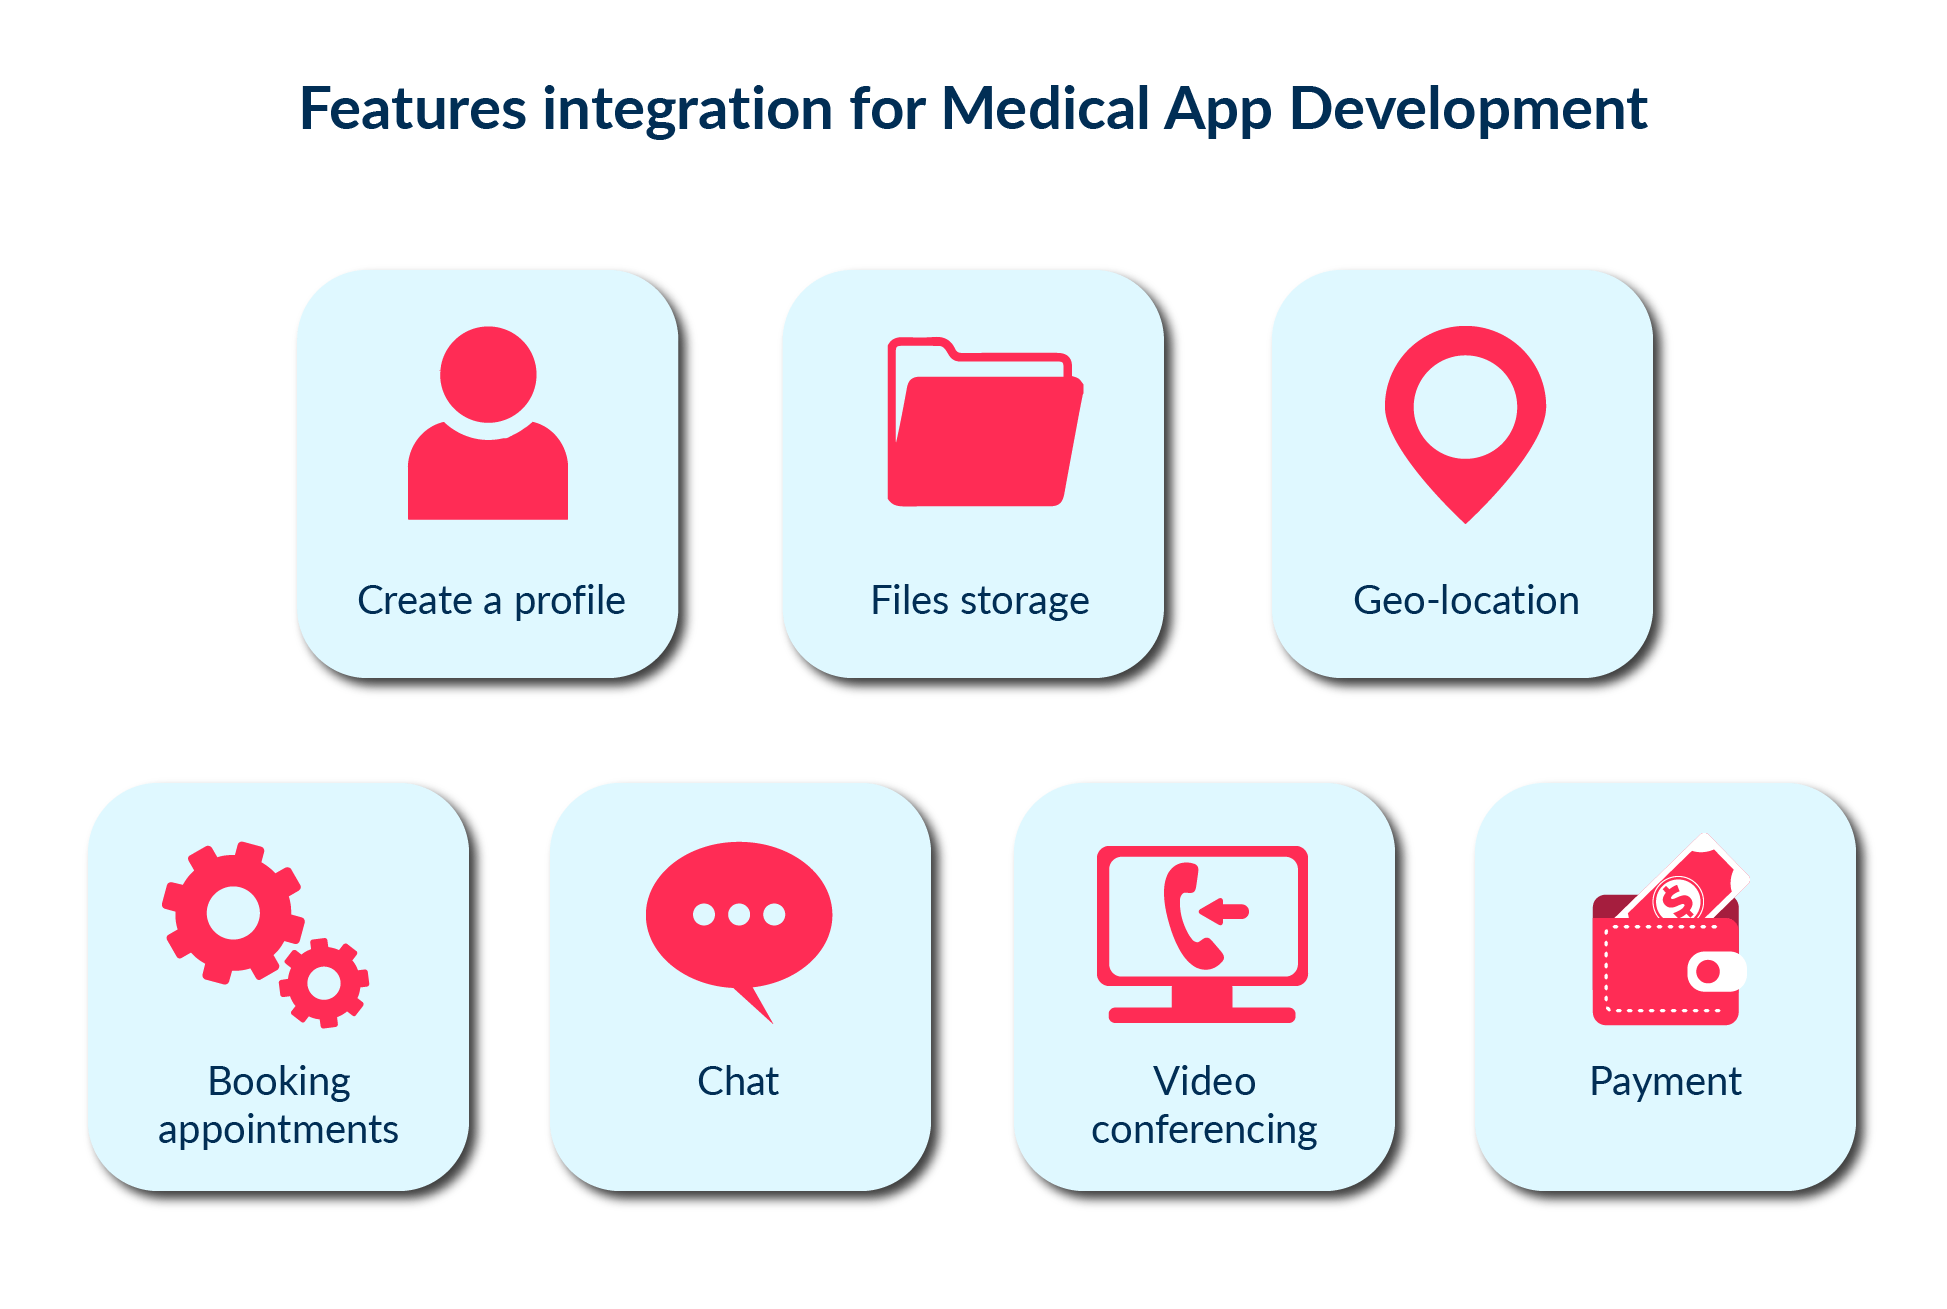 In this picture we have displayed the main integrations that are used to create a medical mobile app.